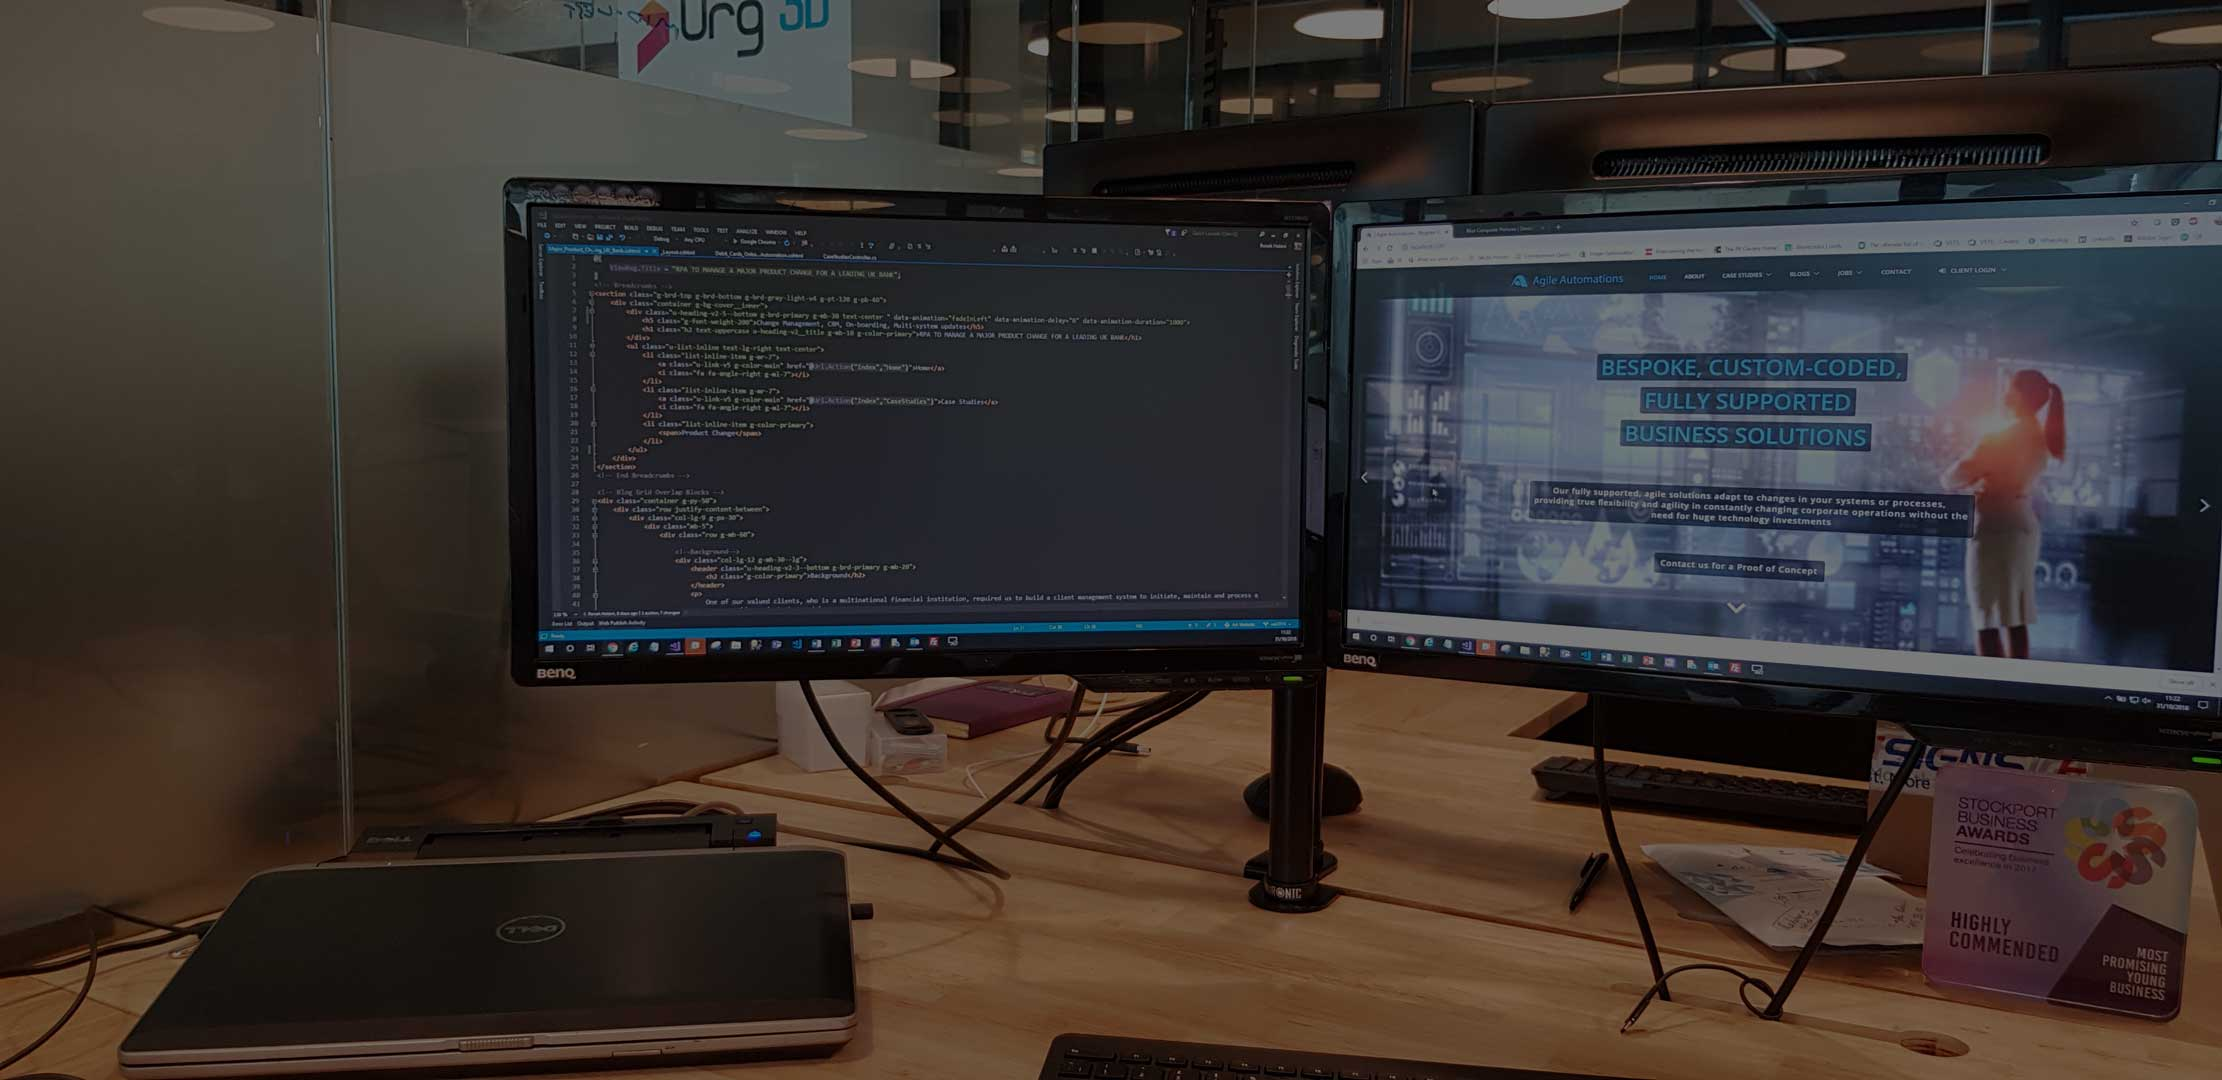 Agile RPA Developer's Desk